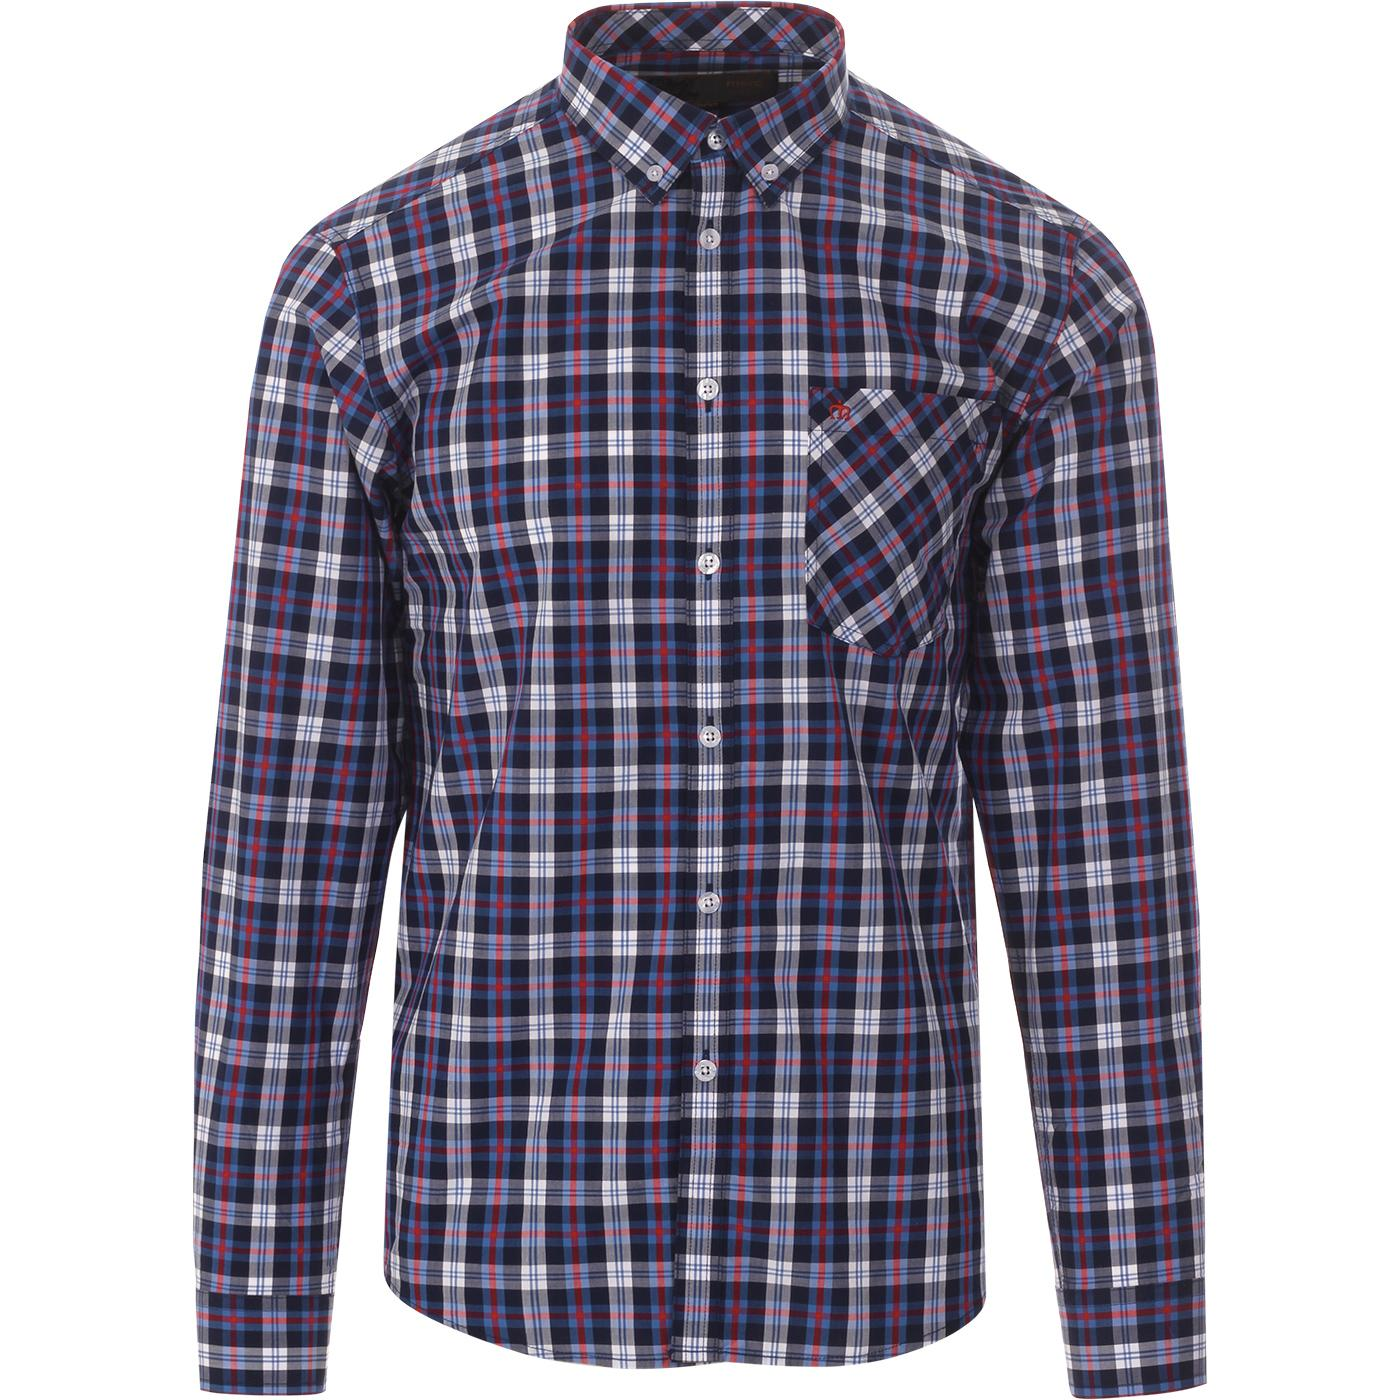 Cornhill MERC Mod Button Down Check Shirt (Blue)